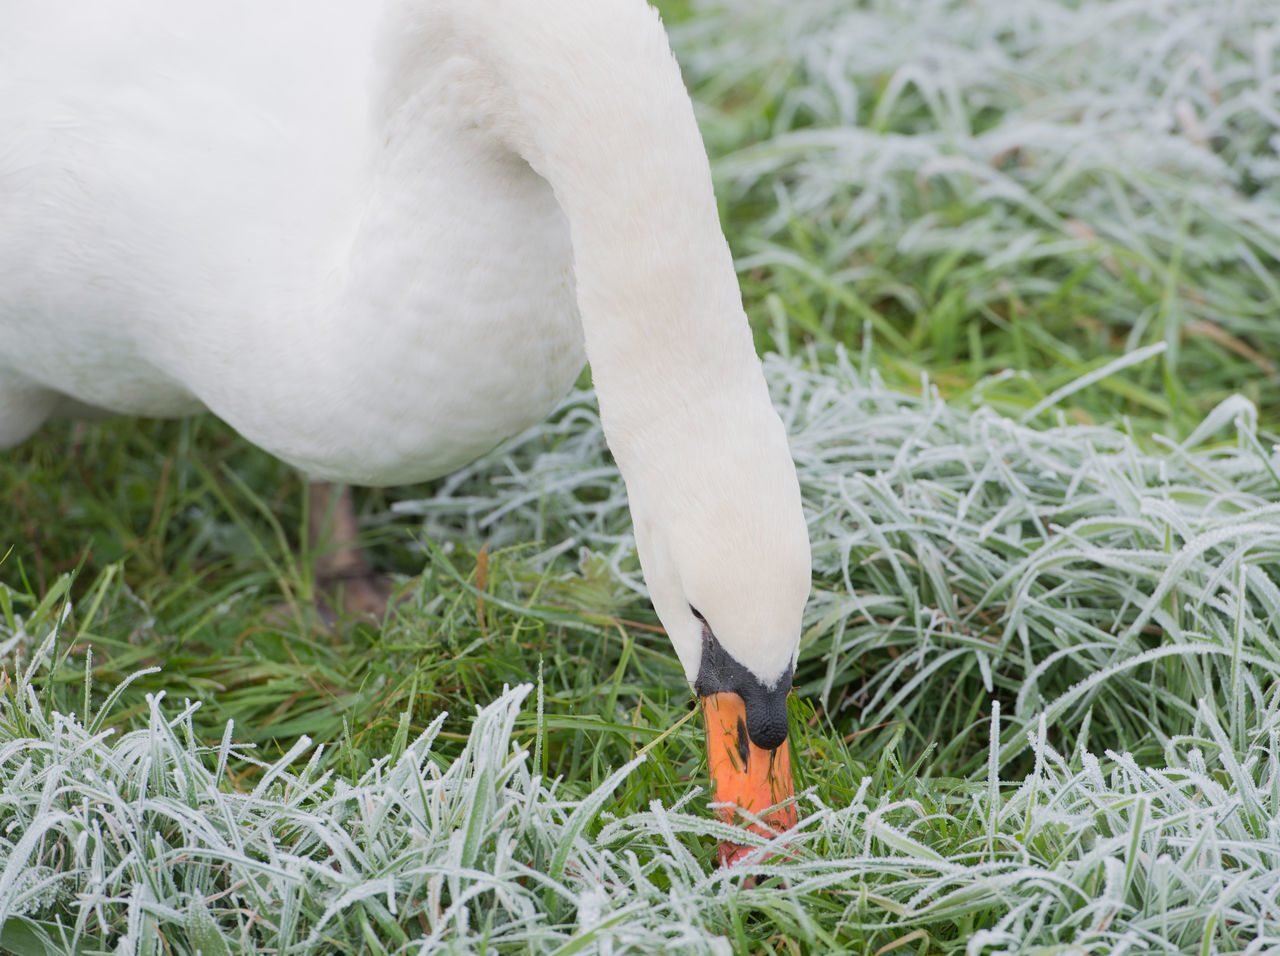 Swan eating grass on the meadow in winter Animal Themes Animals In The Wild Bird Cygnini Goose Grass Graze Hump Swan Meadow Nature No People Swan Winter